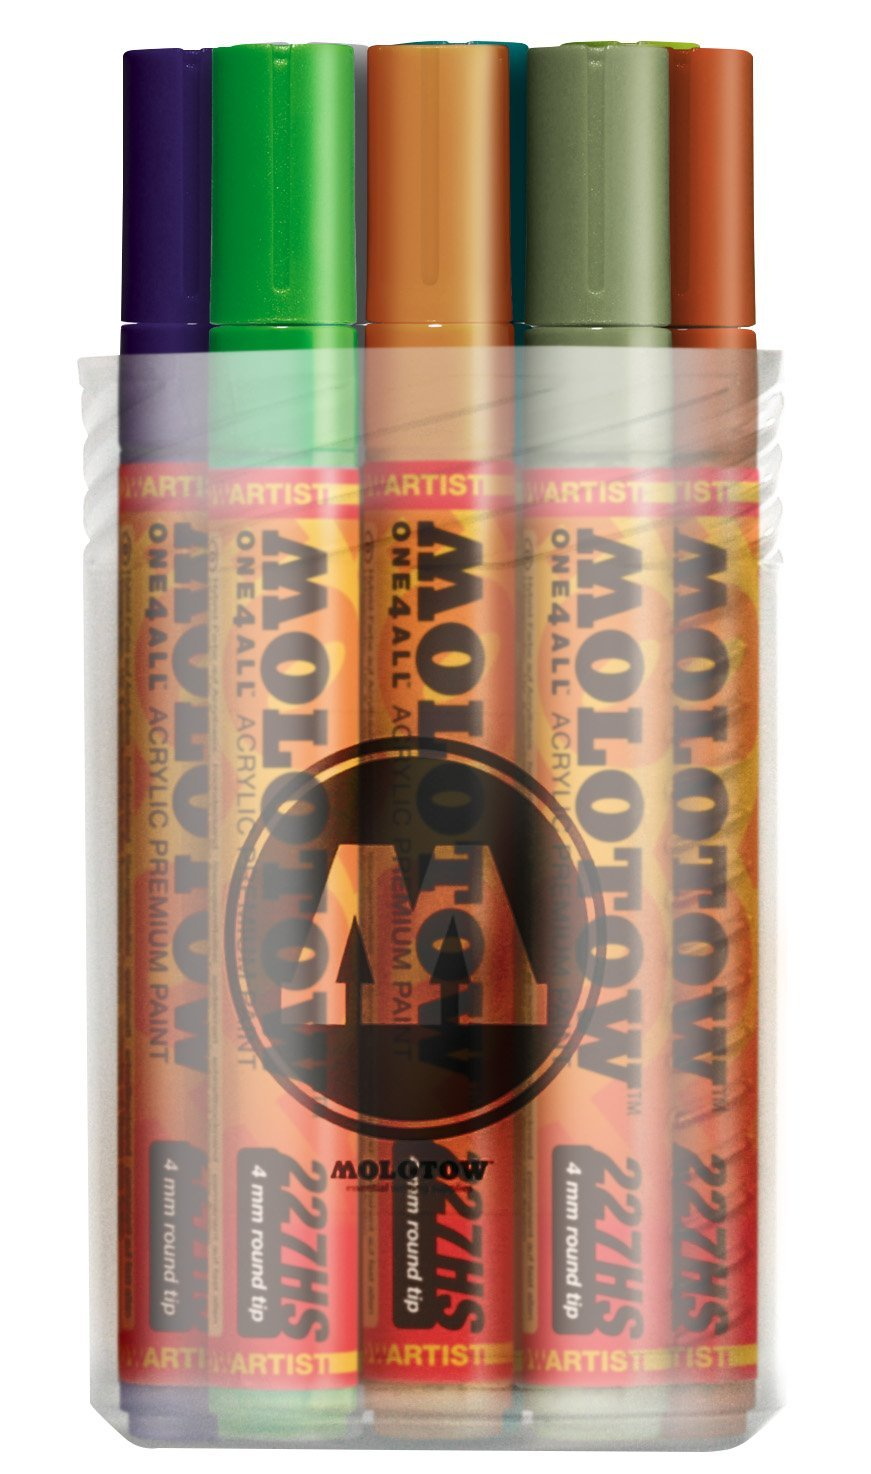 Molotow ONE4ALL Acrylic Paint Marker Set 2, 4mm, Assorted Colors, 12 Marker Set, 1 Set Each (200.164)